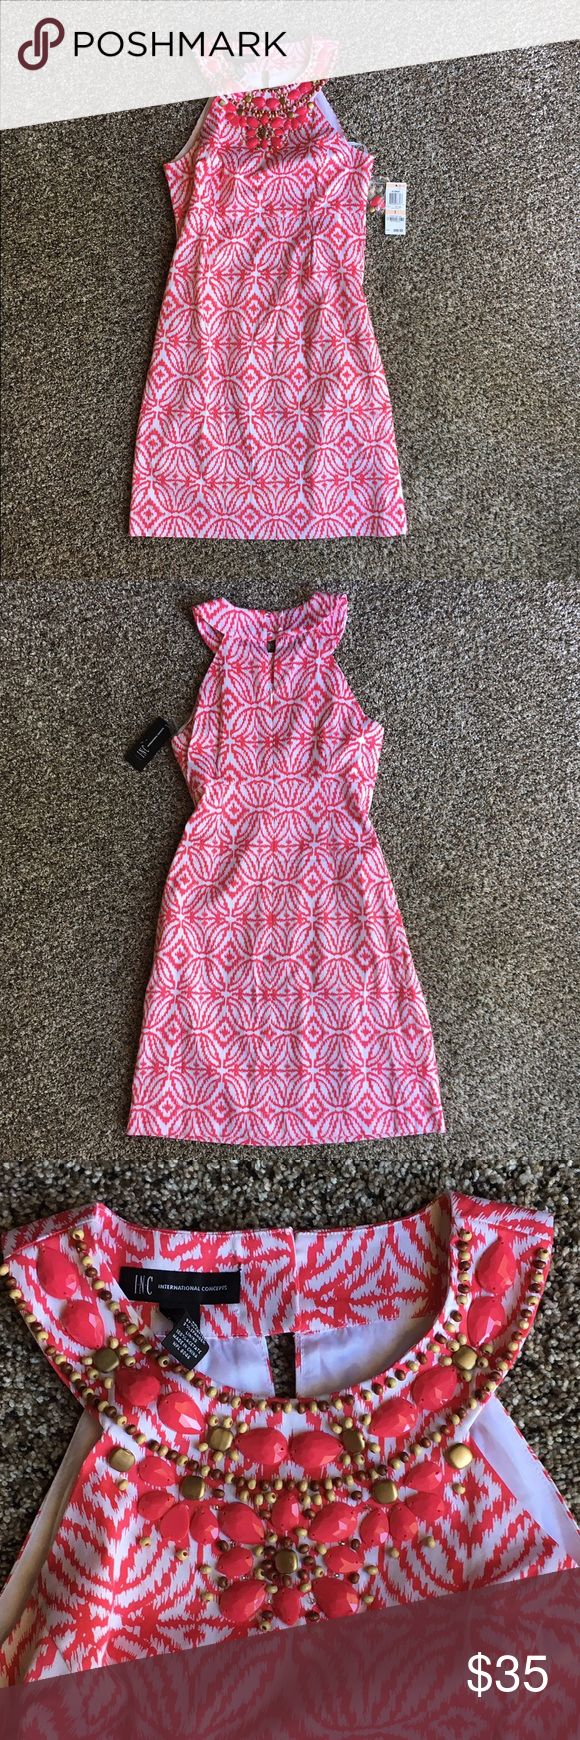 NWT - INC dress Vibrant pink and white dress with jeweled detail. Double button in the neckline and zipper in back. Never worn, tags attached. Perfect dress for Spring BBQs, baby showers, or even Easter. INC International Concepts Dresses